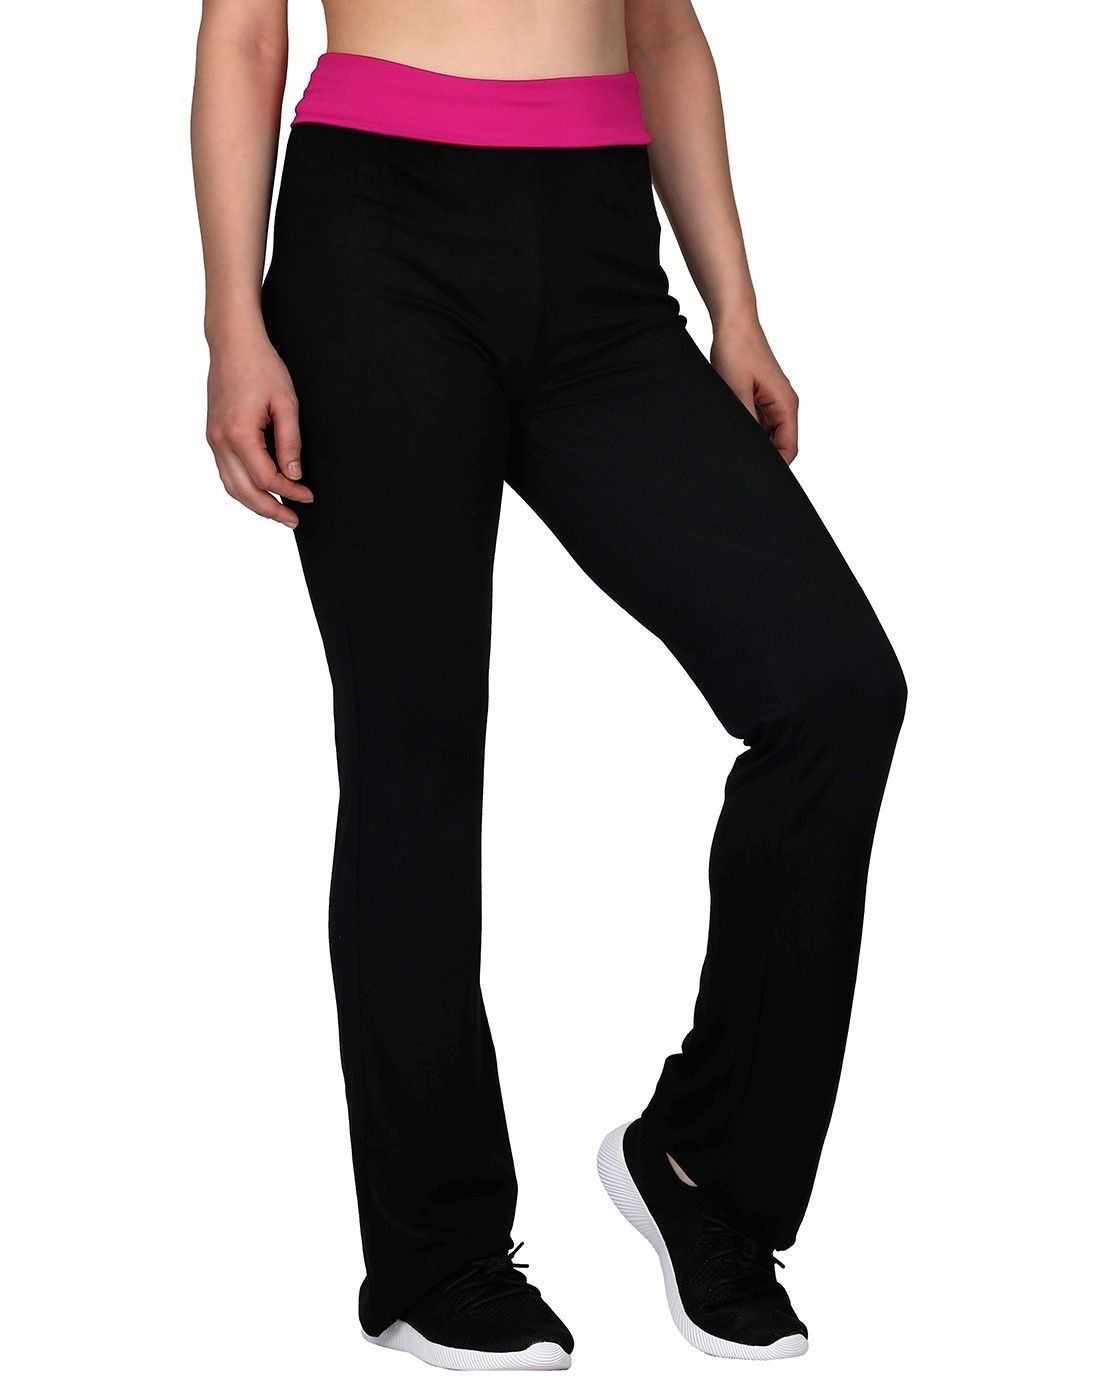 cd5fba68b571f Activewear Tops 185082: Women Color Block Foldover Waist Athletic Yoga  Flare Leg Pants Stretch Leggings -> BUY IT NOW ONLY: $15.99 on #eBay  #activewear ...